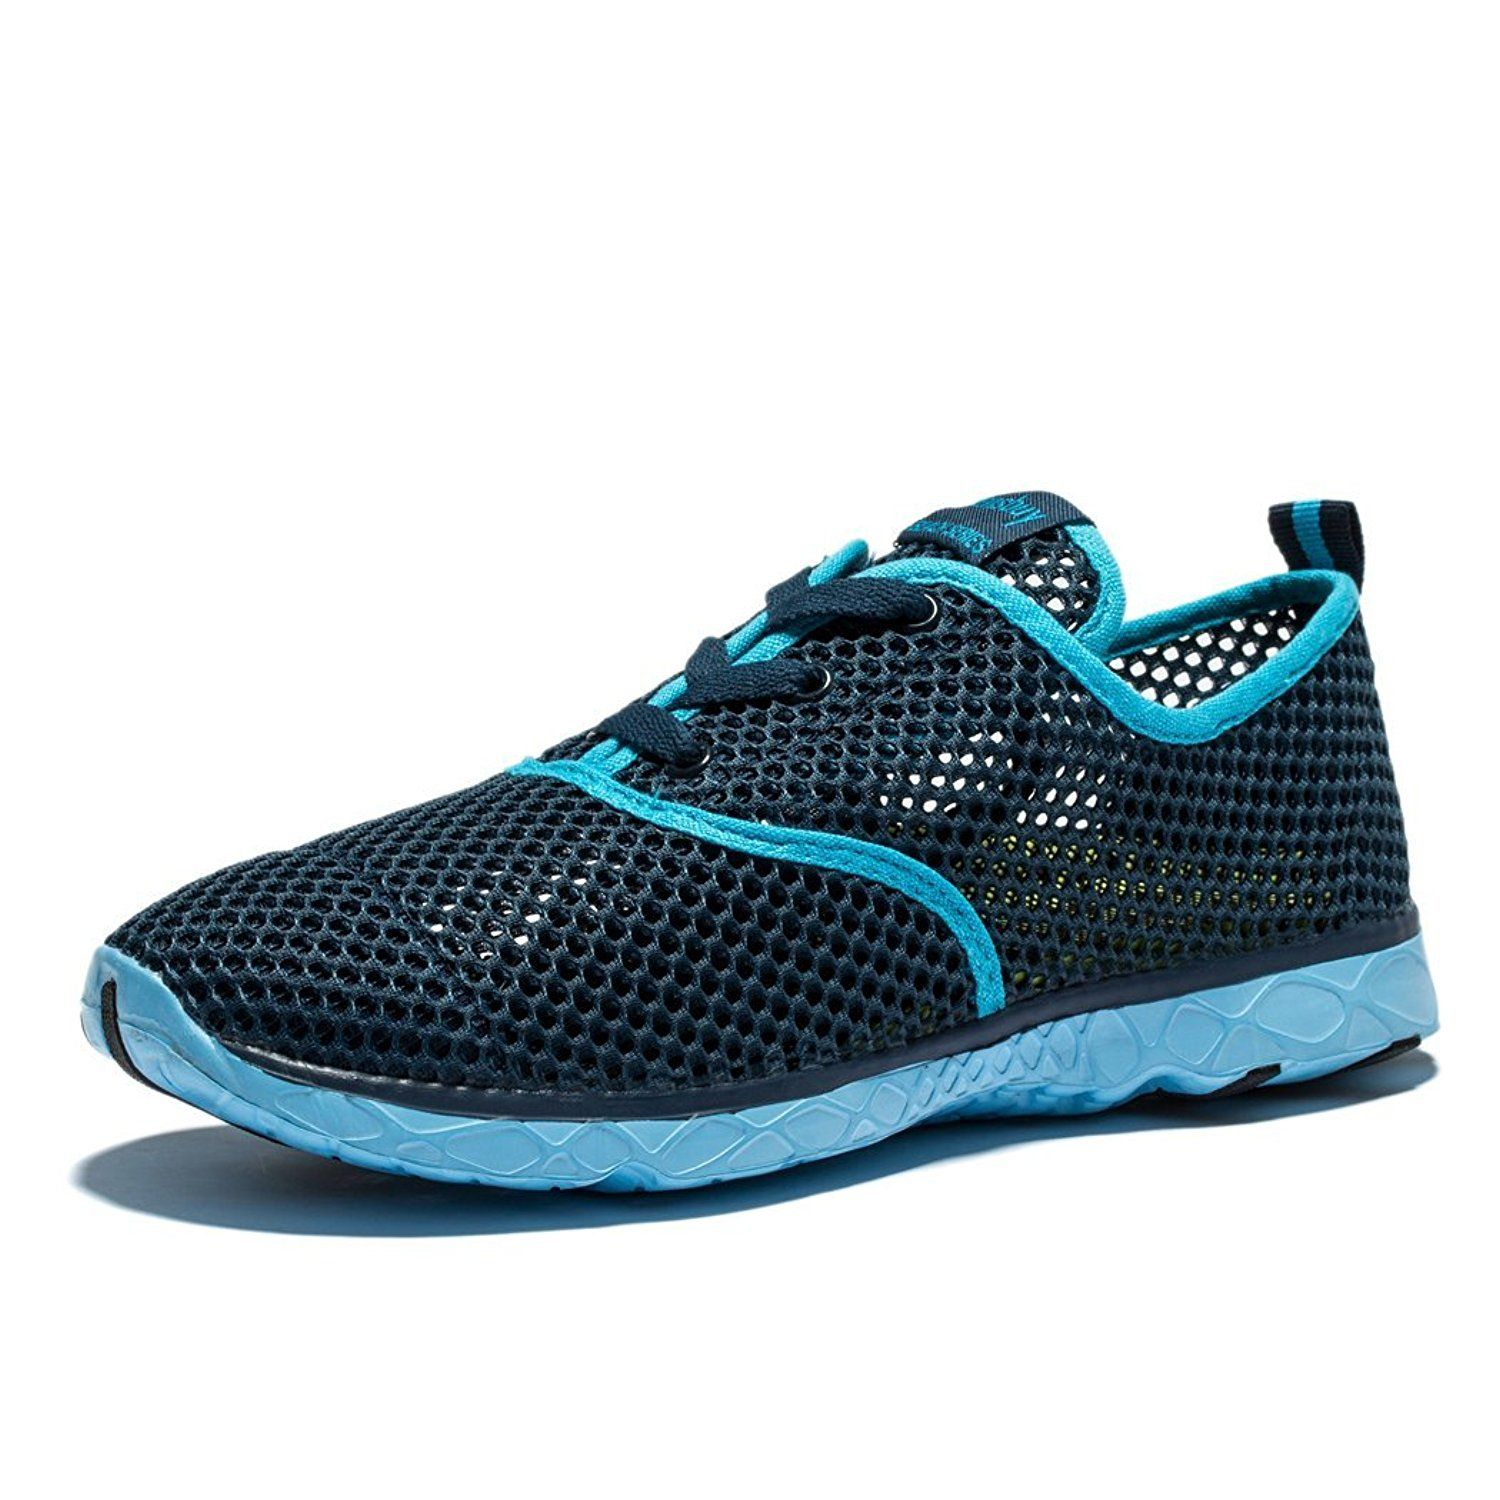 Outdoor,Athletic,Slip-on Gimekiss Pumps Breathable Mesh Shoes,Running